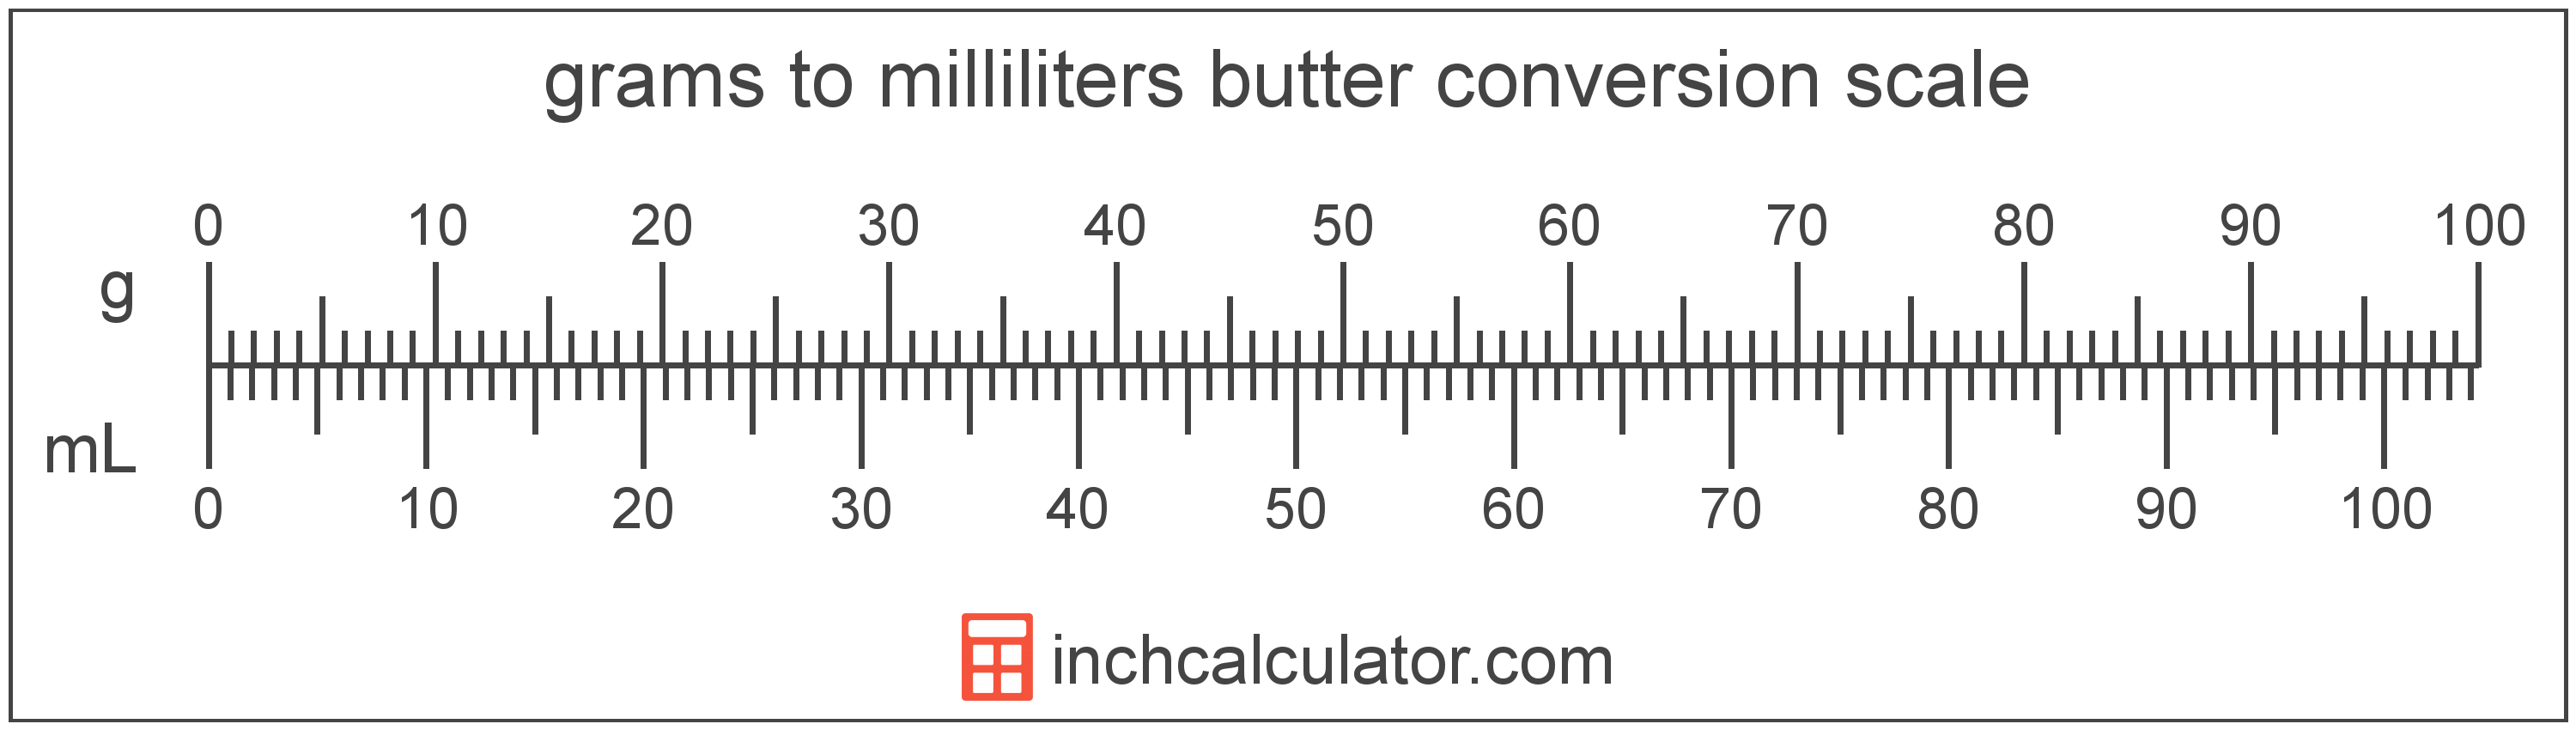 Grams Of Butter To Milliliters Conversion G To Ml